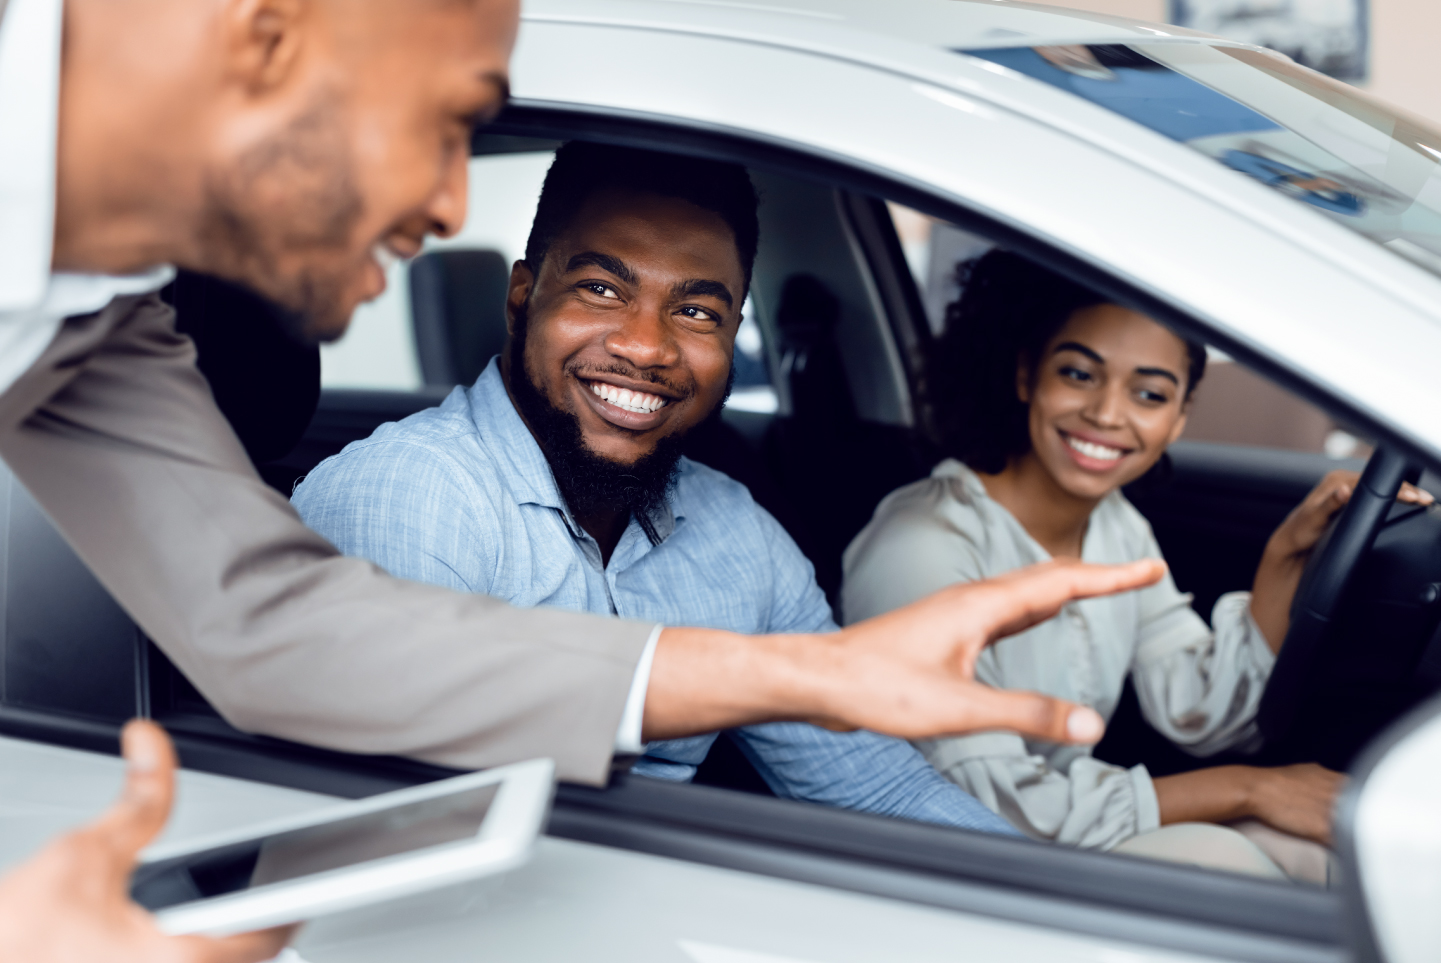 Dealer representative talking to young couple in car